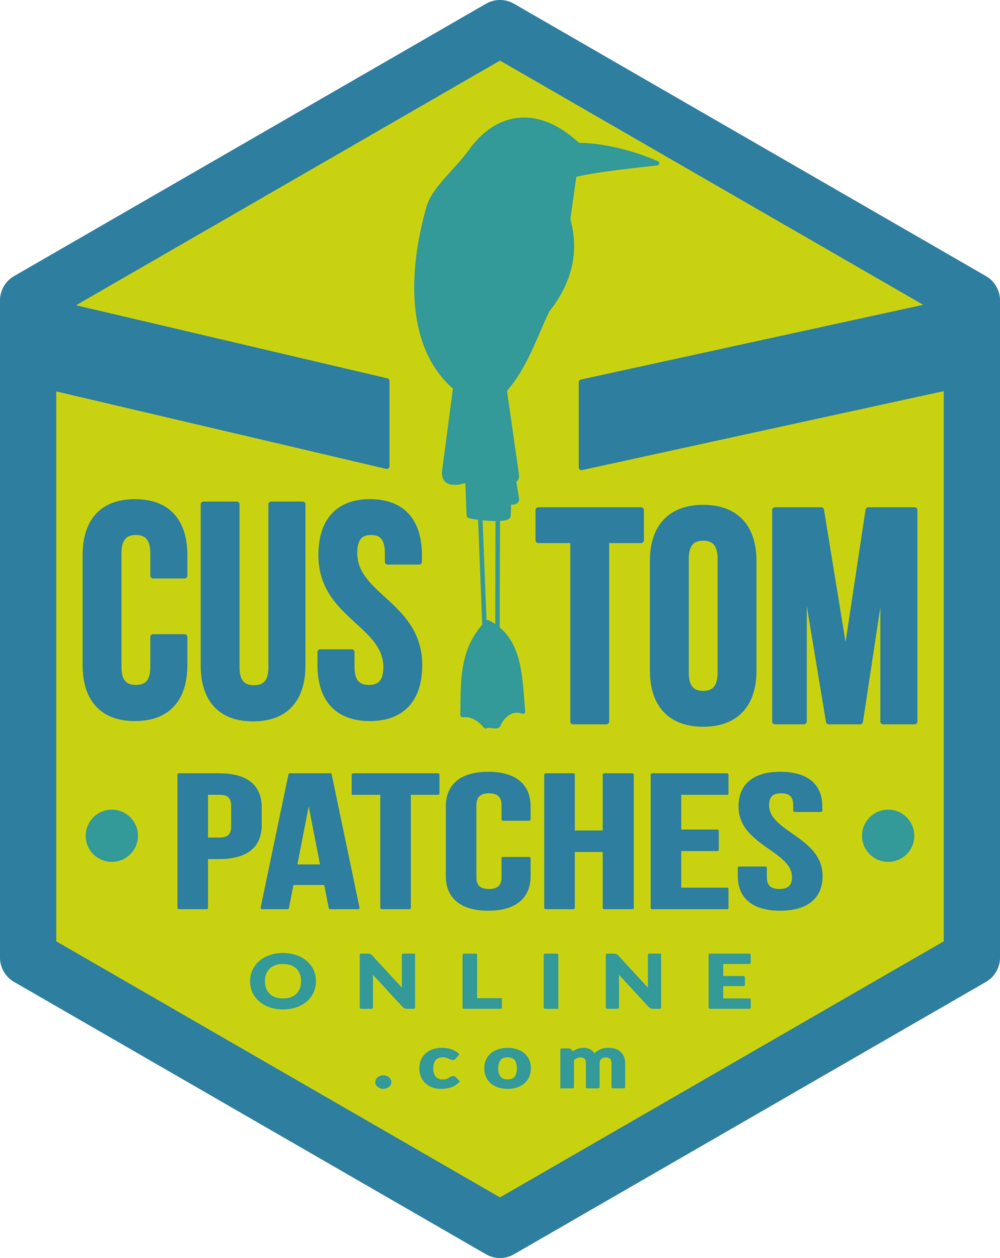 custompatchesonline (5).png